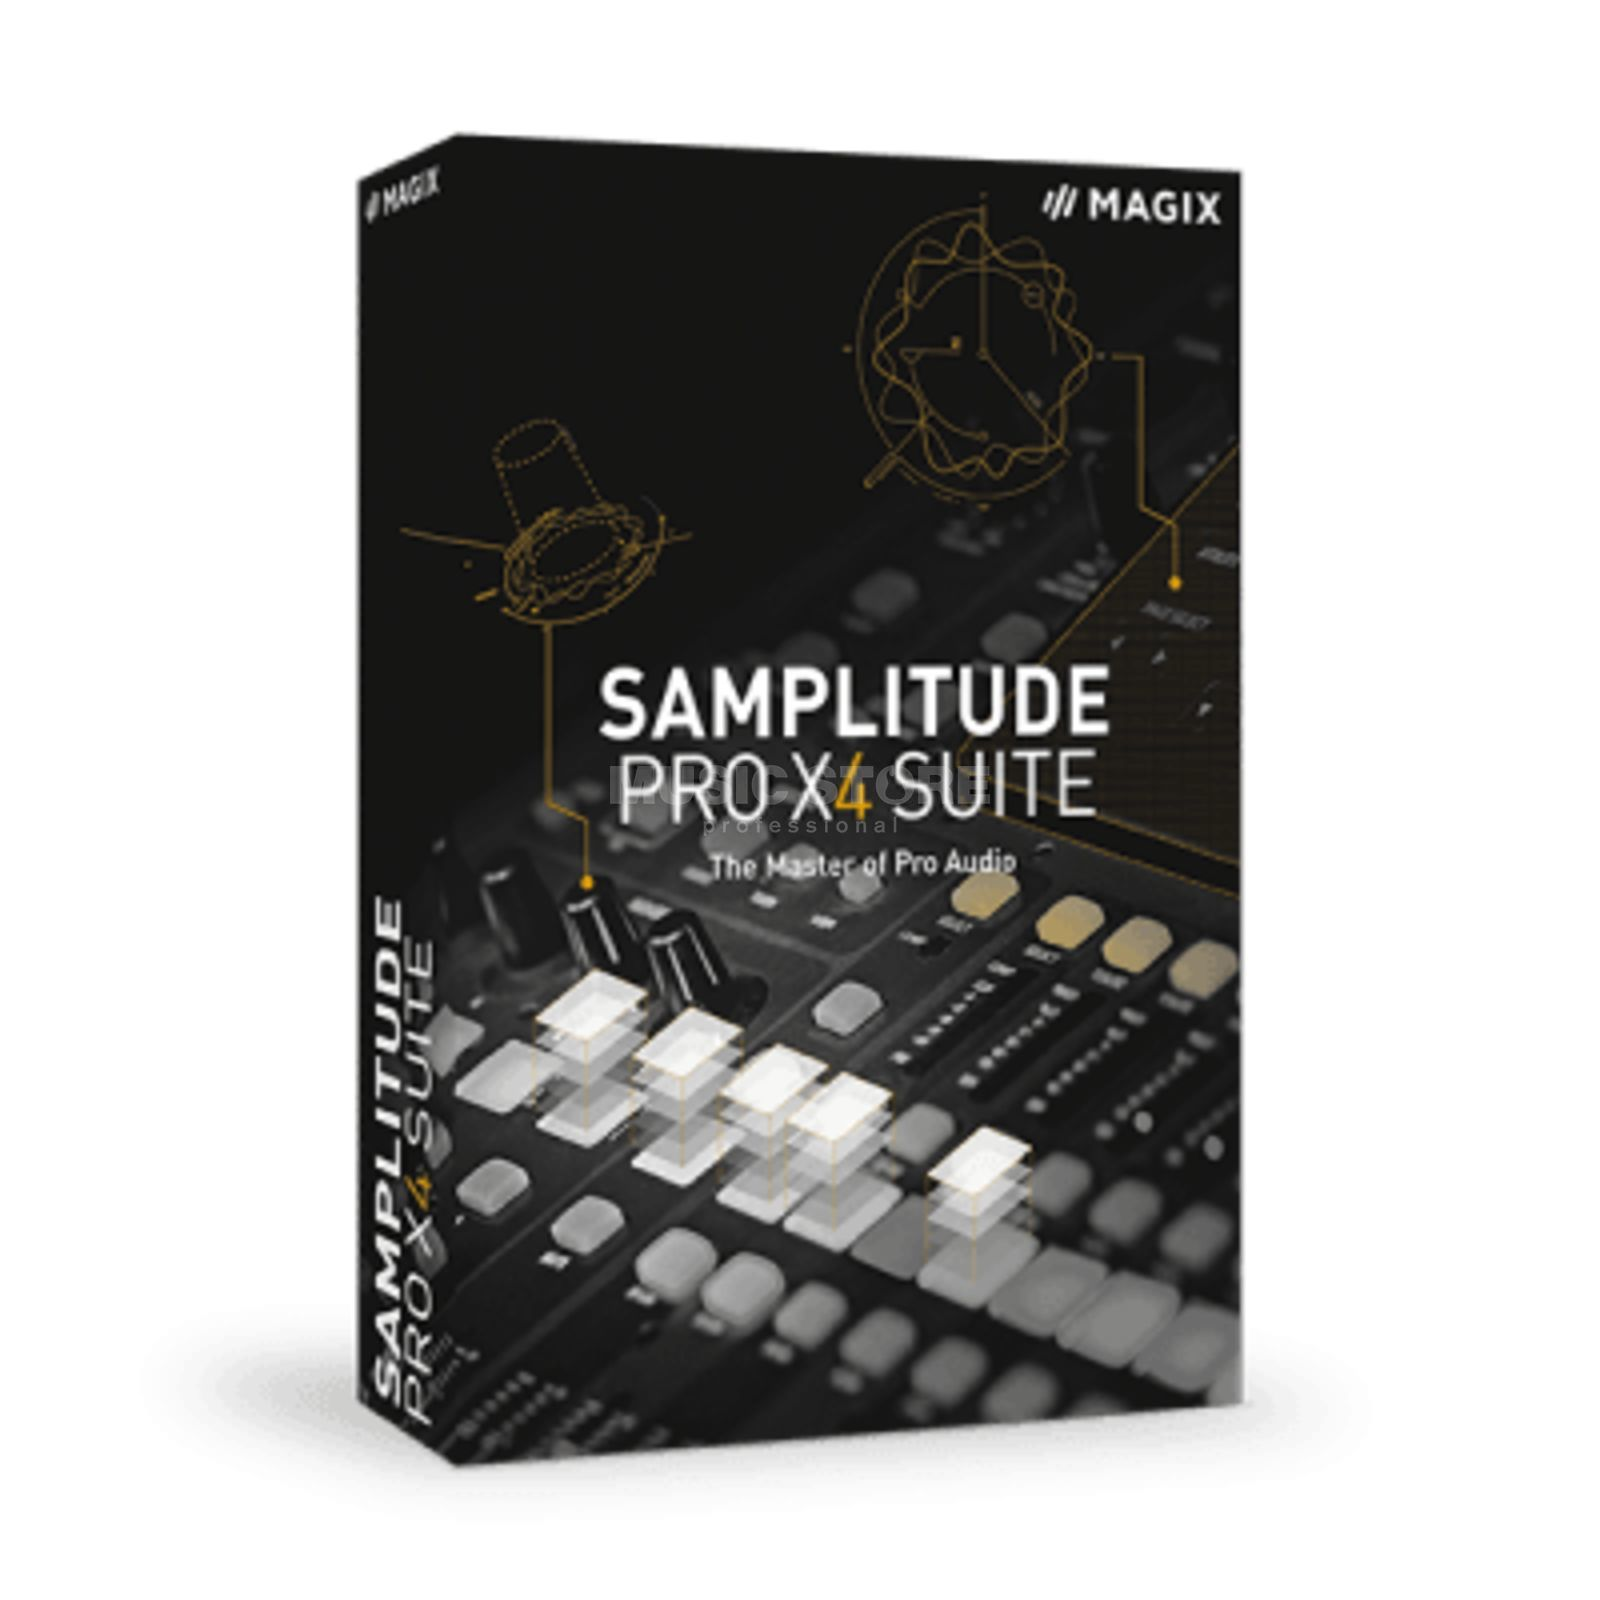 Magix Samplitude Pro X4 Academic License Code Product Image